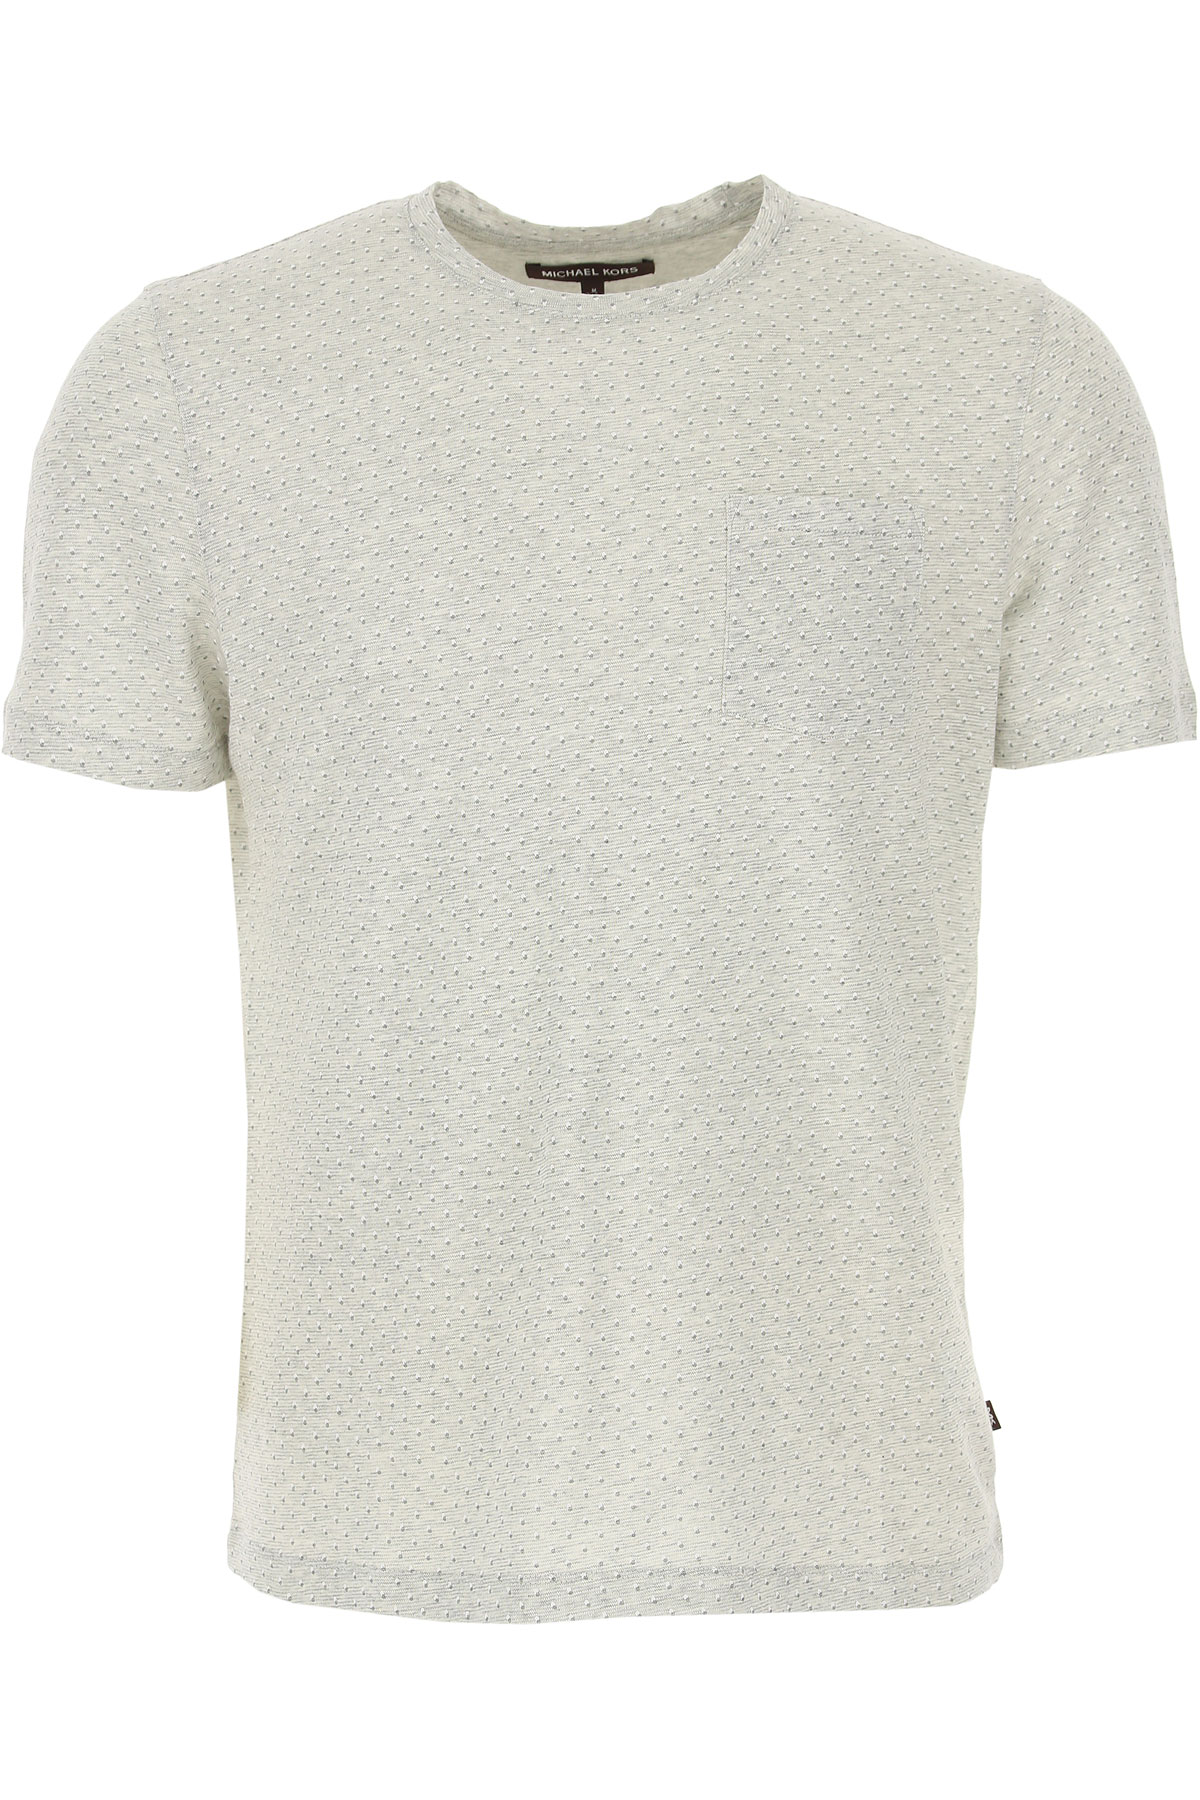 Michael Kors T-Shirt for Men On Sale in Outlet, Heather Grey, Cotton, 2019, L XL